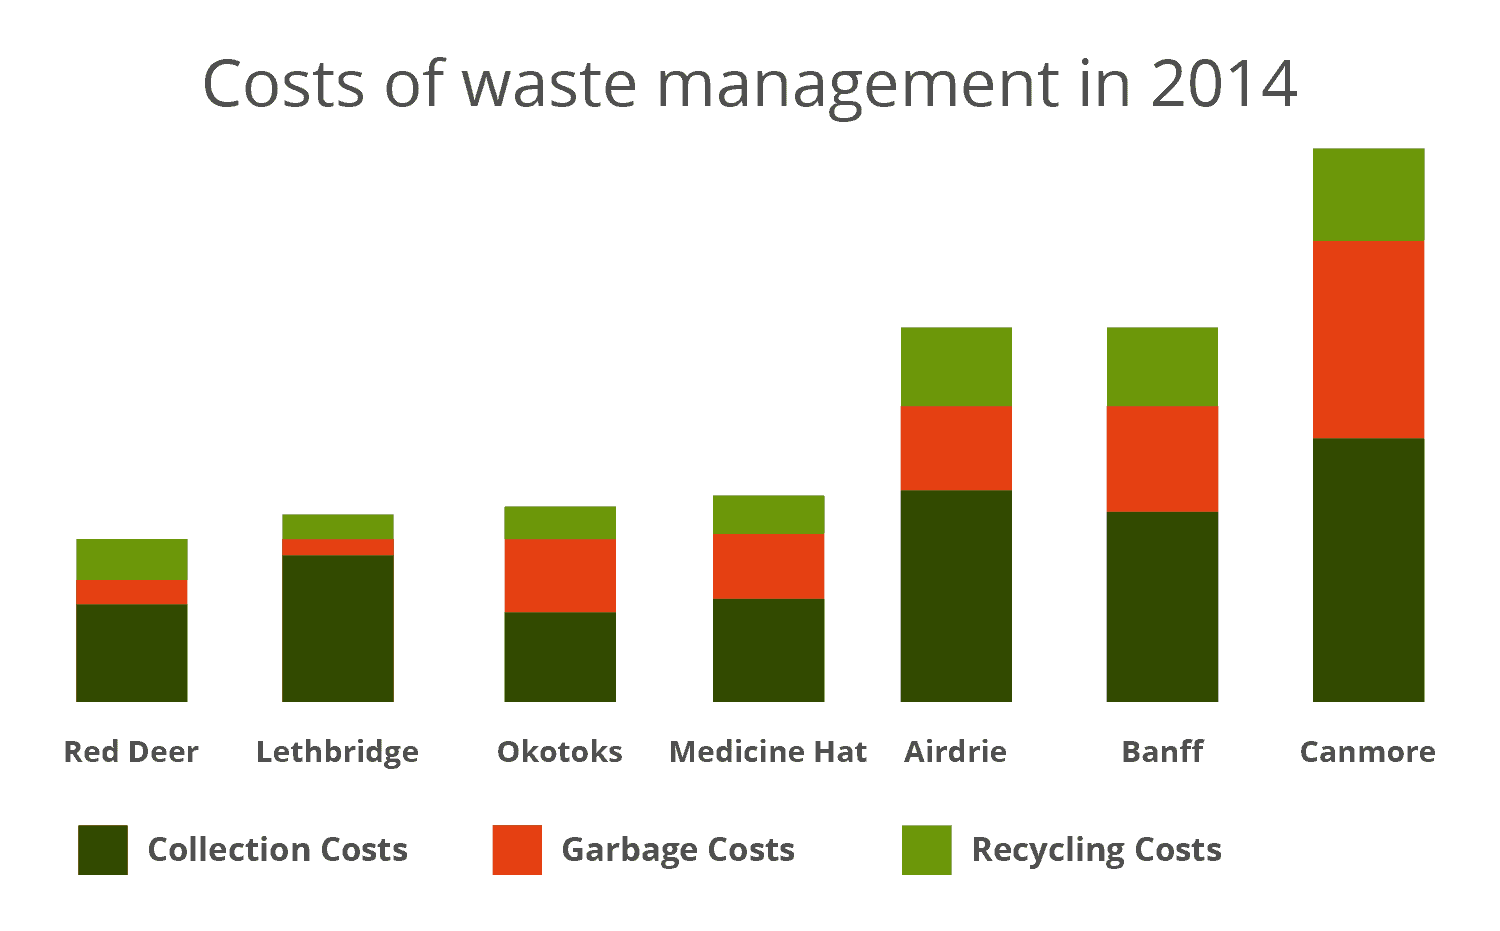 Costs of waste management in Alberta